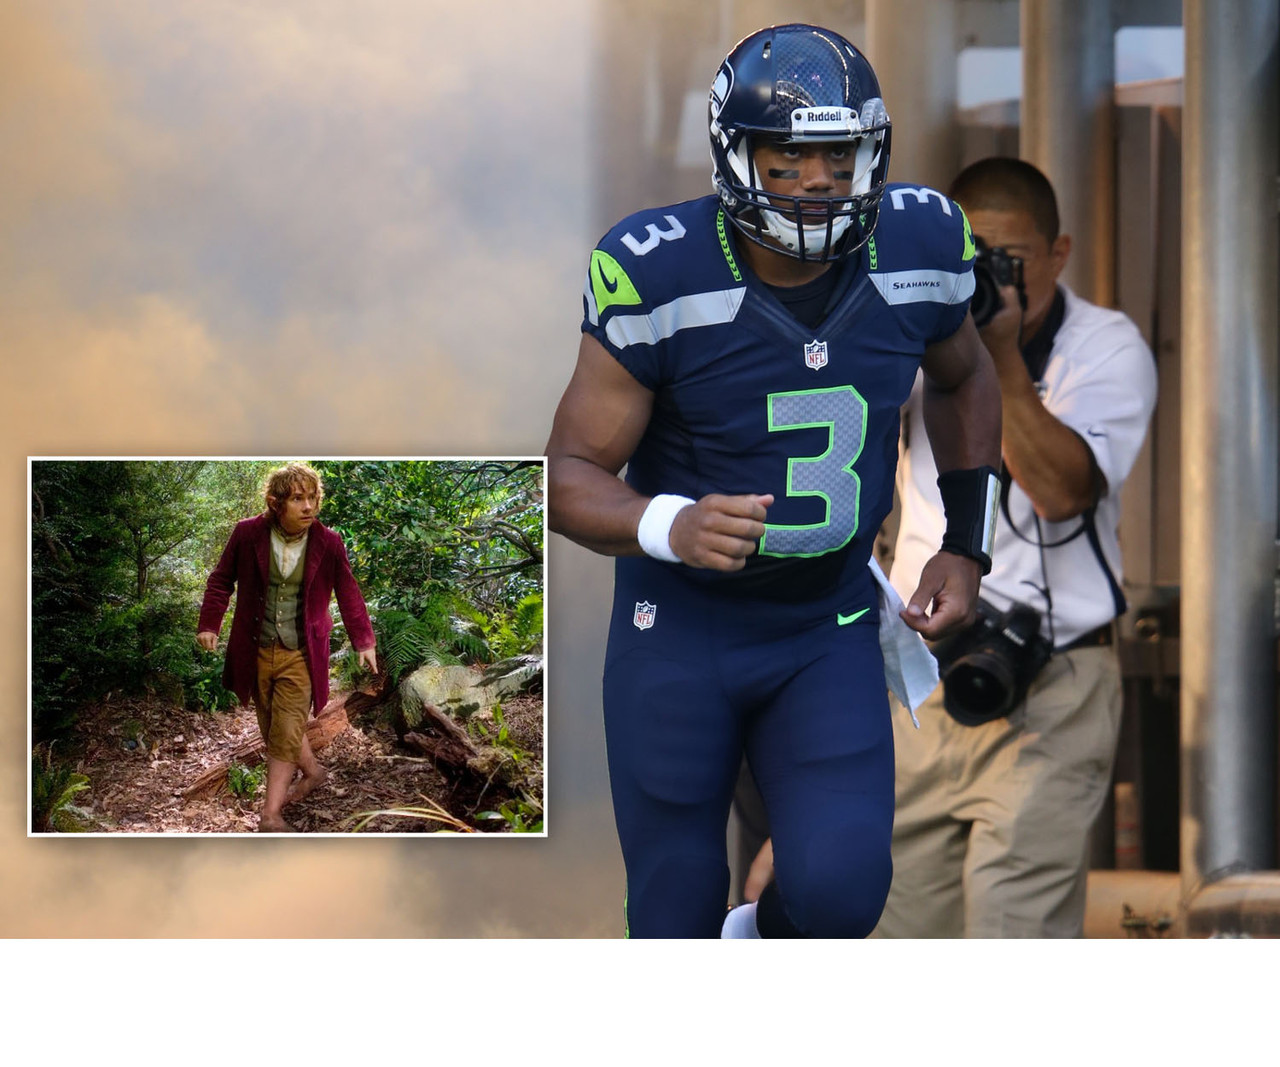 The Real Fantasy Football Lord Of The Rings Meets The Nfl  Nflcom Going Along With Our Awesome Trailer Mashup Russell Wilson Would Indeed  Be Bilbo